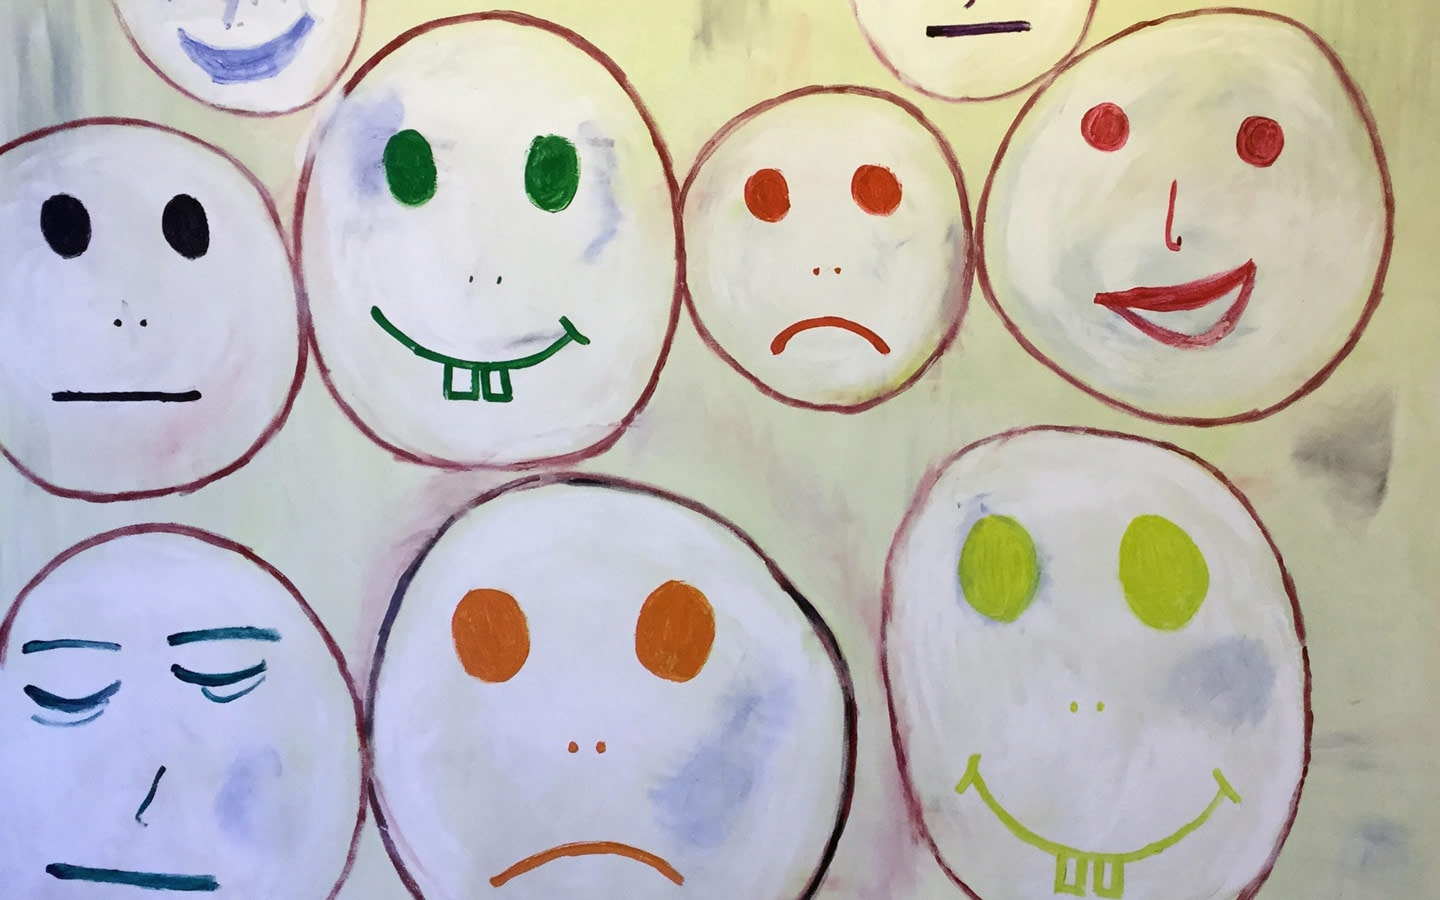 Children's drawings of faces in the Sanoudos Kapakian Orthodontist Clinic in Glyfada, Athens